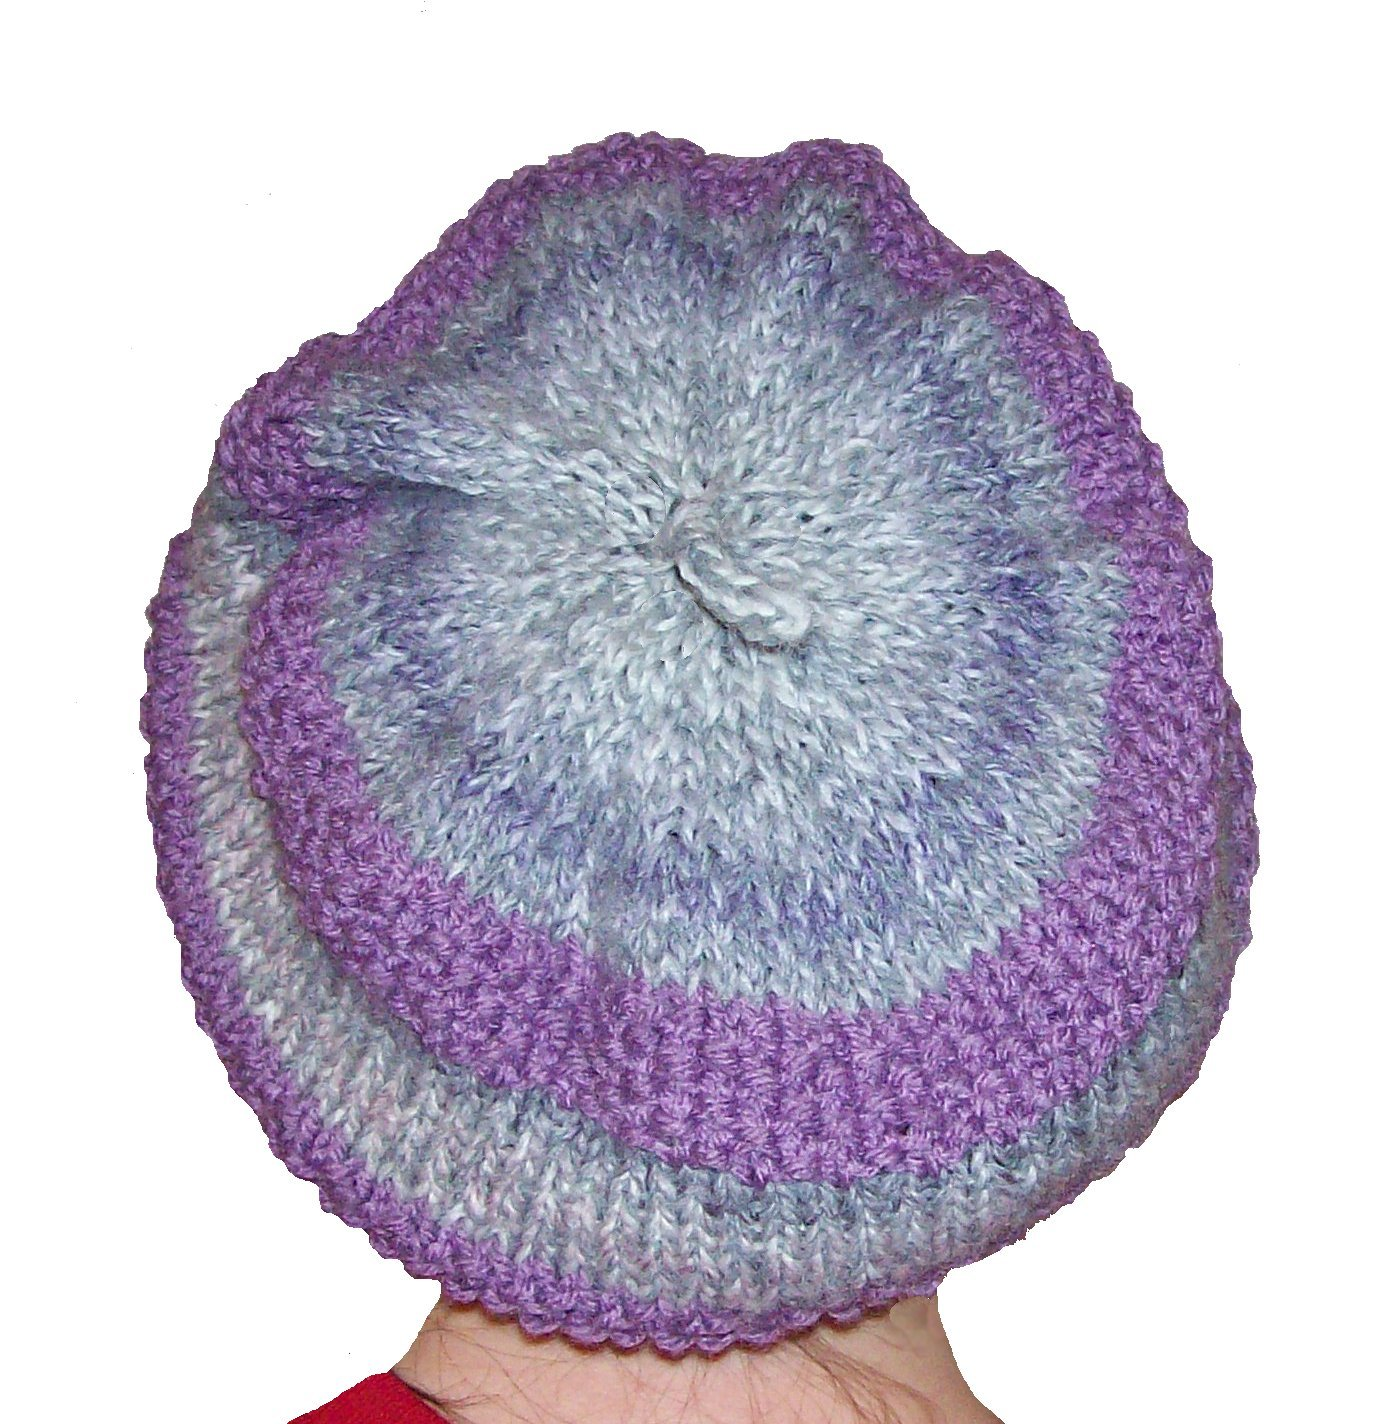 Knitting Patterns For Cute Hats : Karen Bee Knitting: New Pattern! Cute and Slouchy Hat